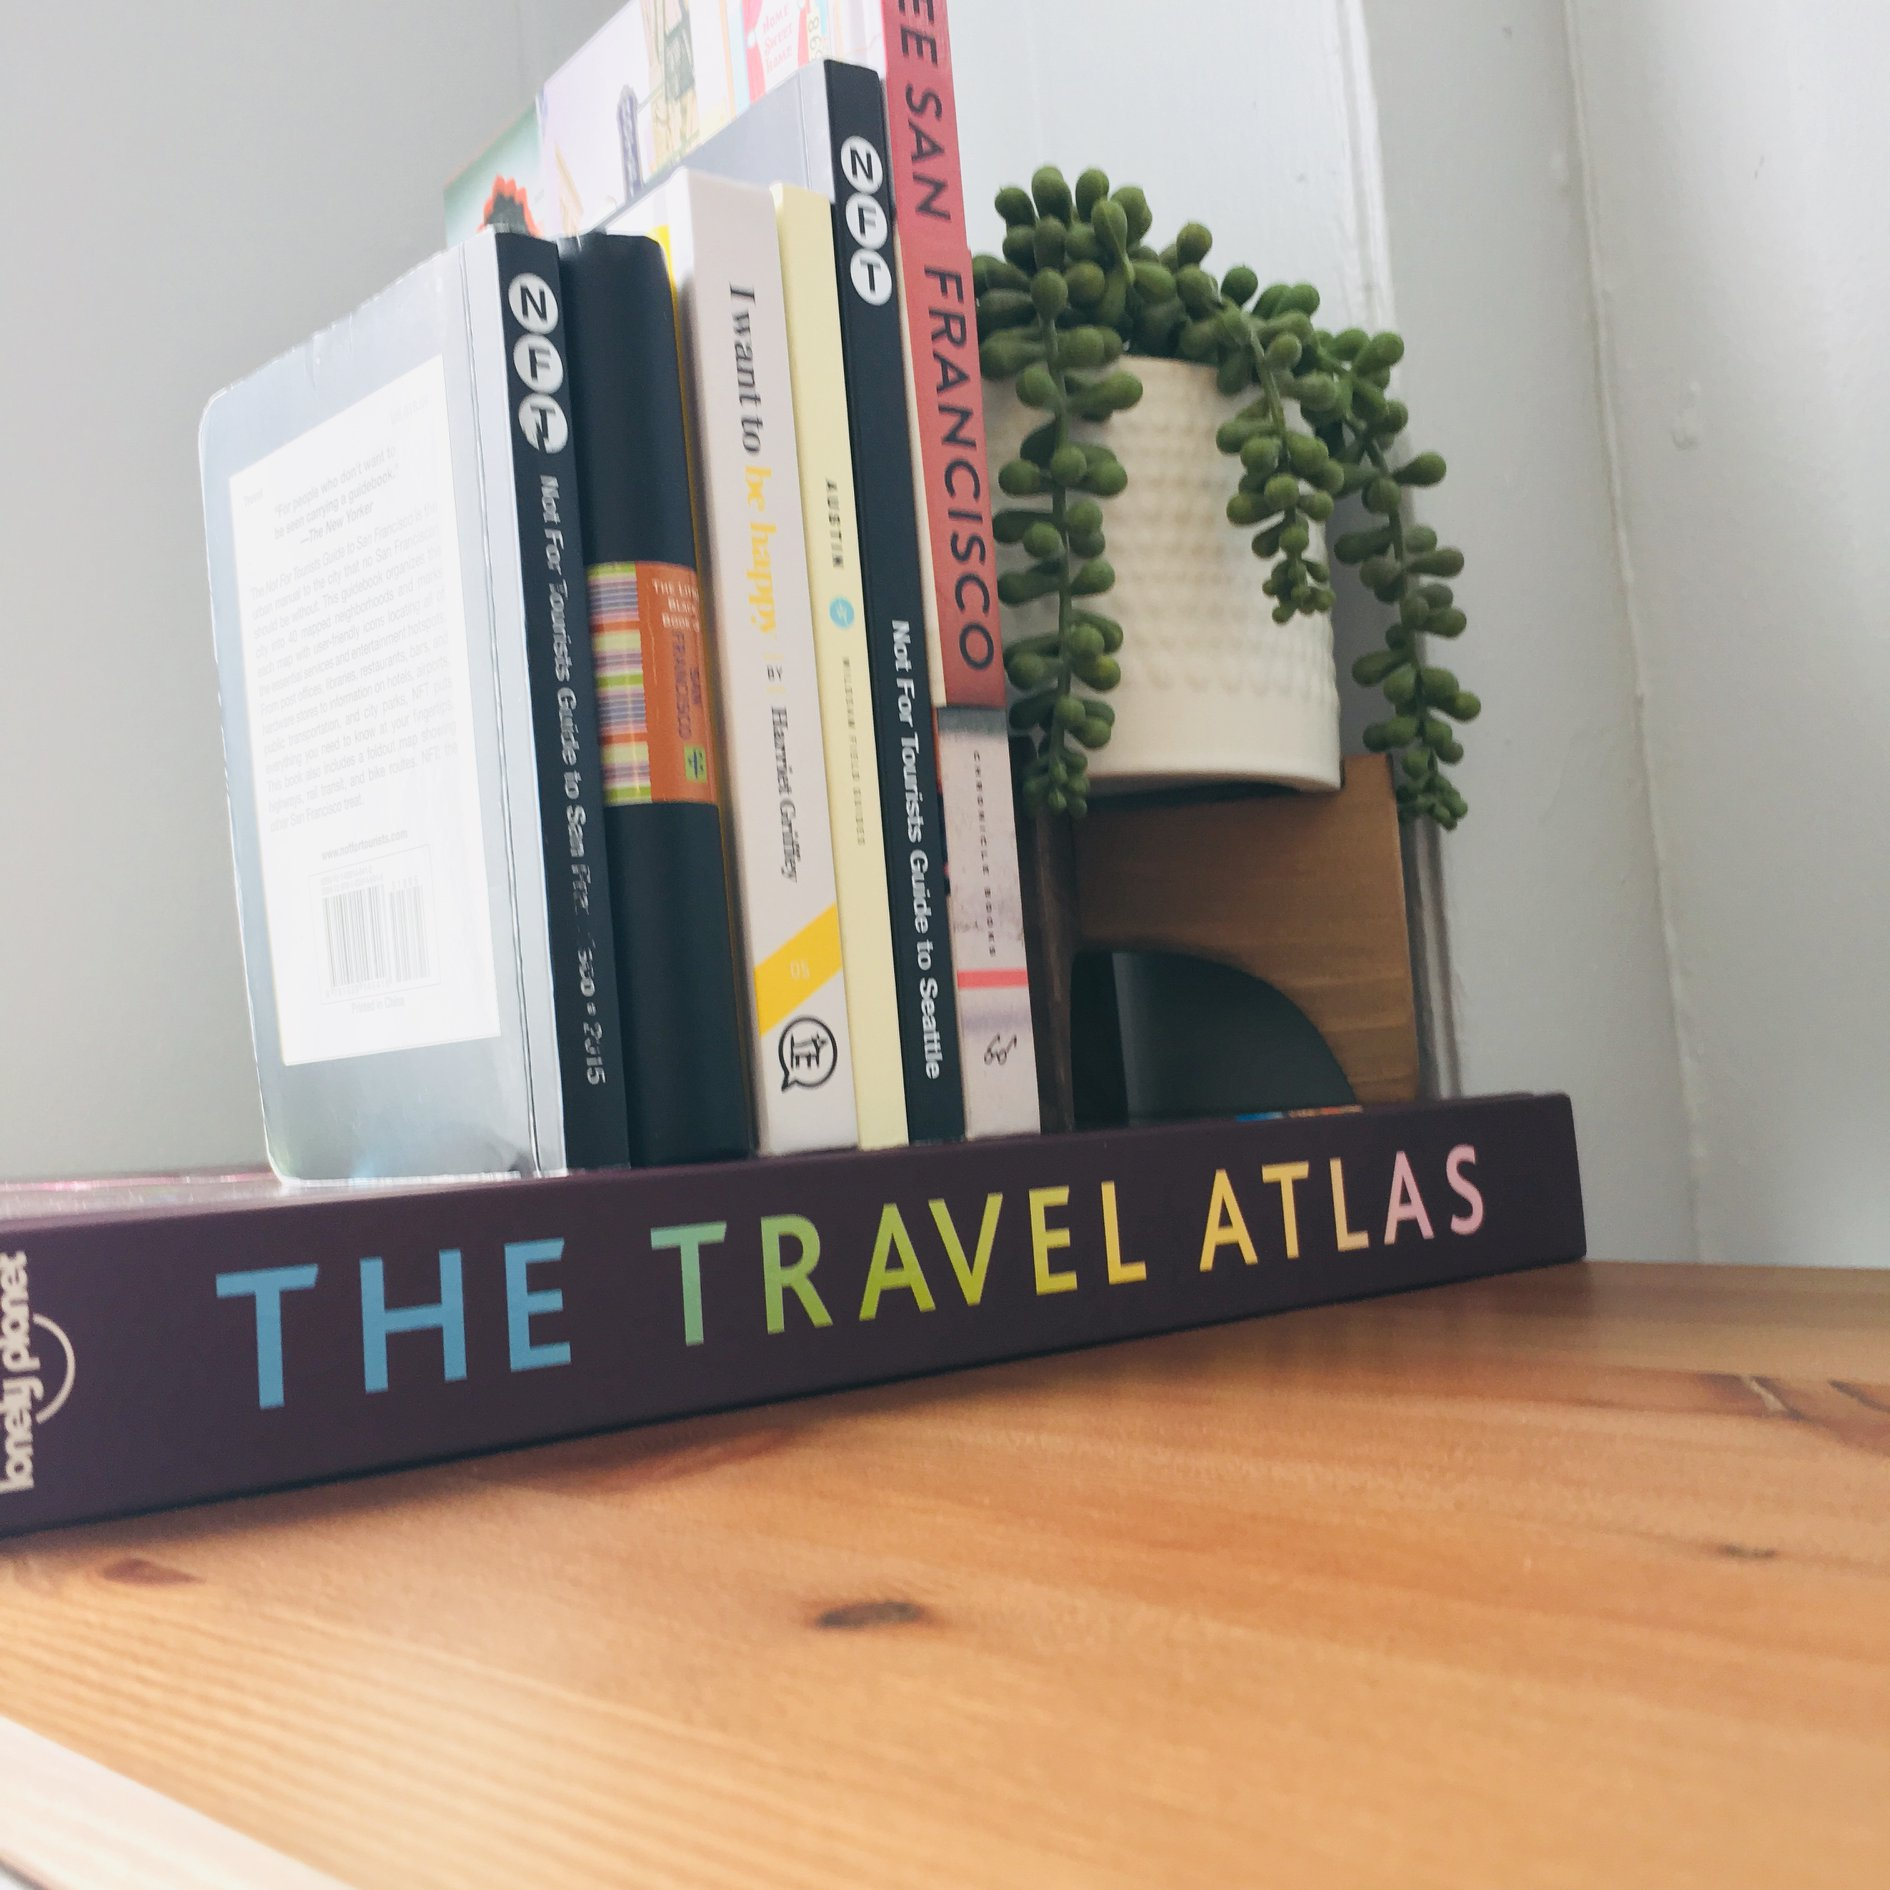 Crystal + Chad's Collection of Travel Books, featuring some of their favorite destinations. | Photo Credit: C. Starns / C. Grave